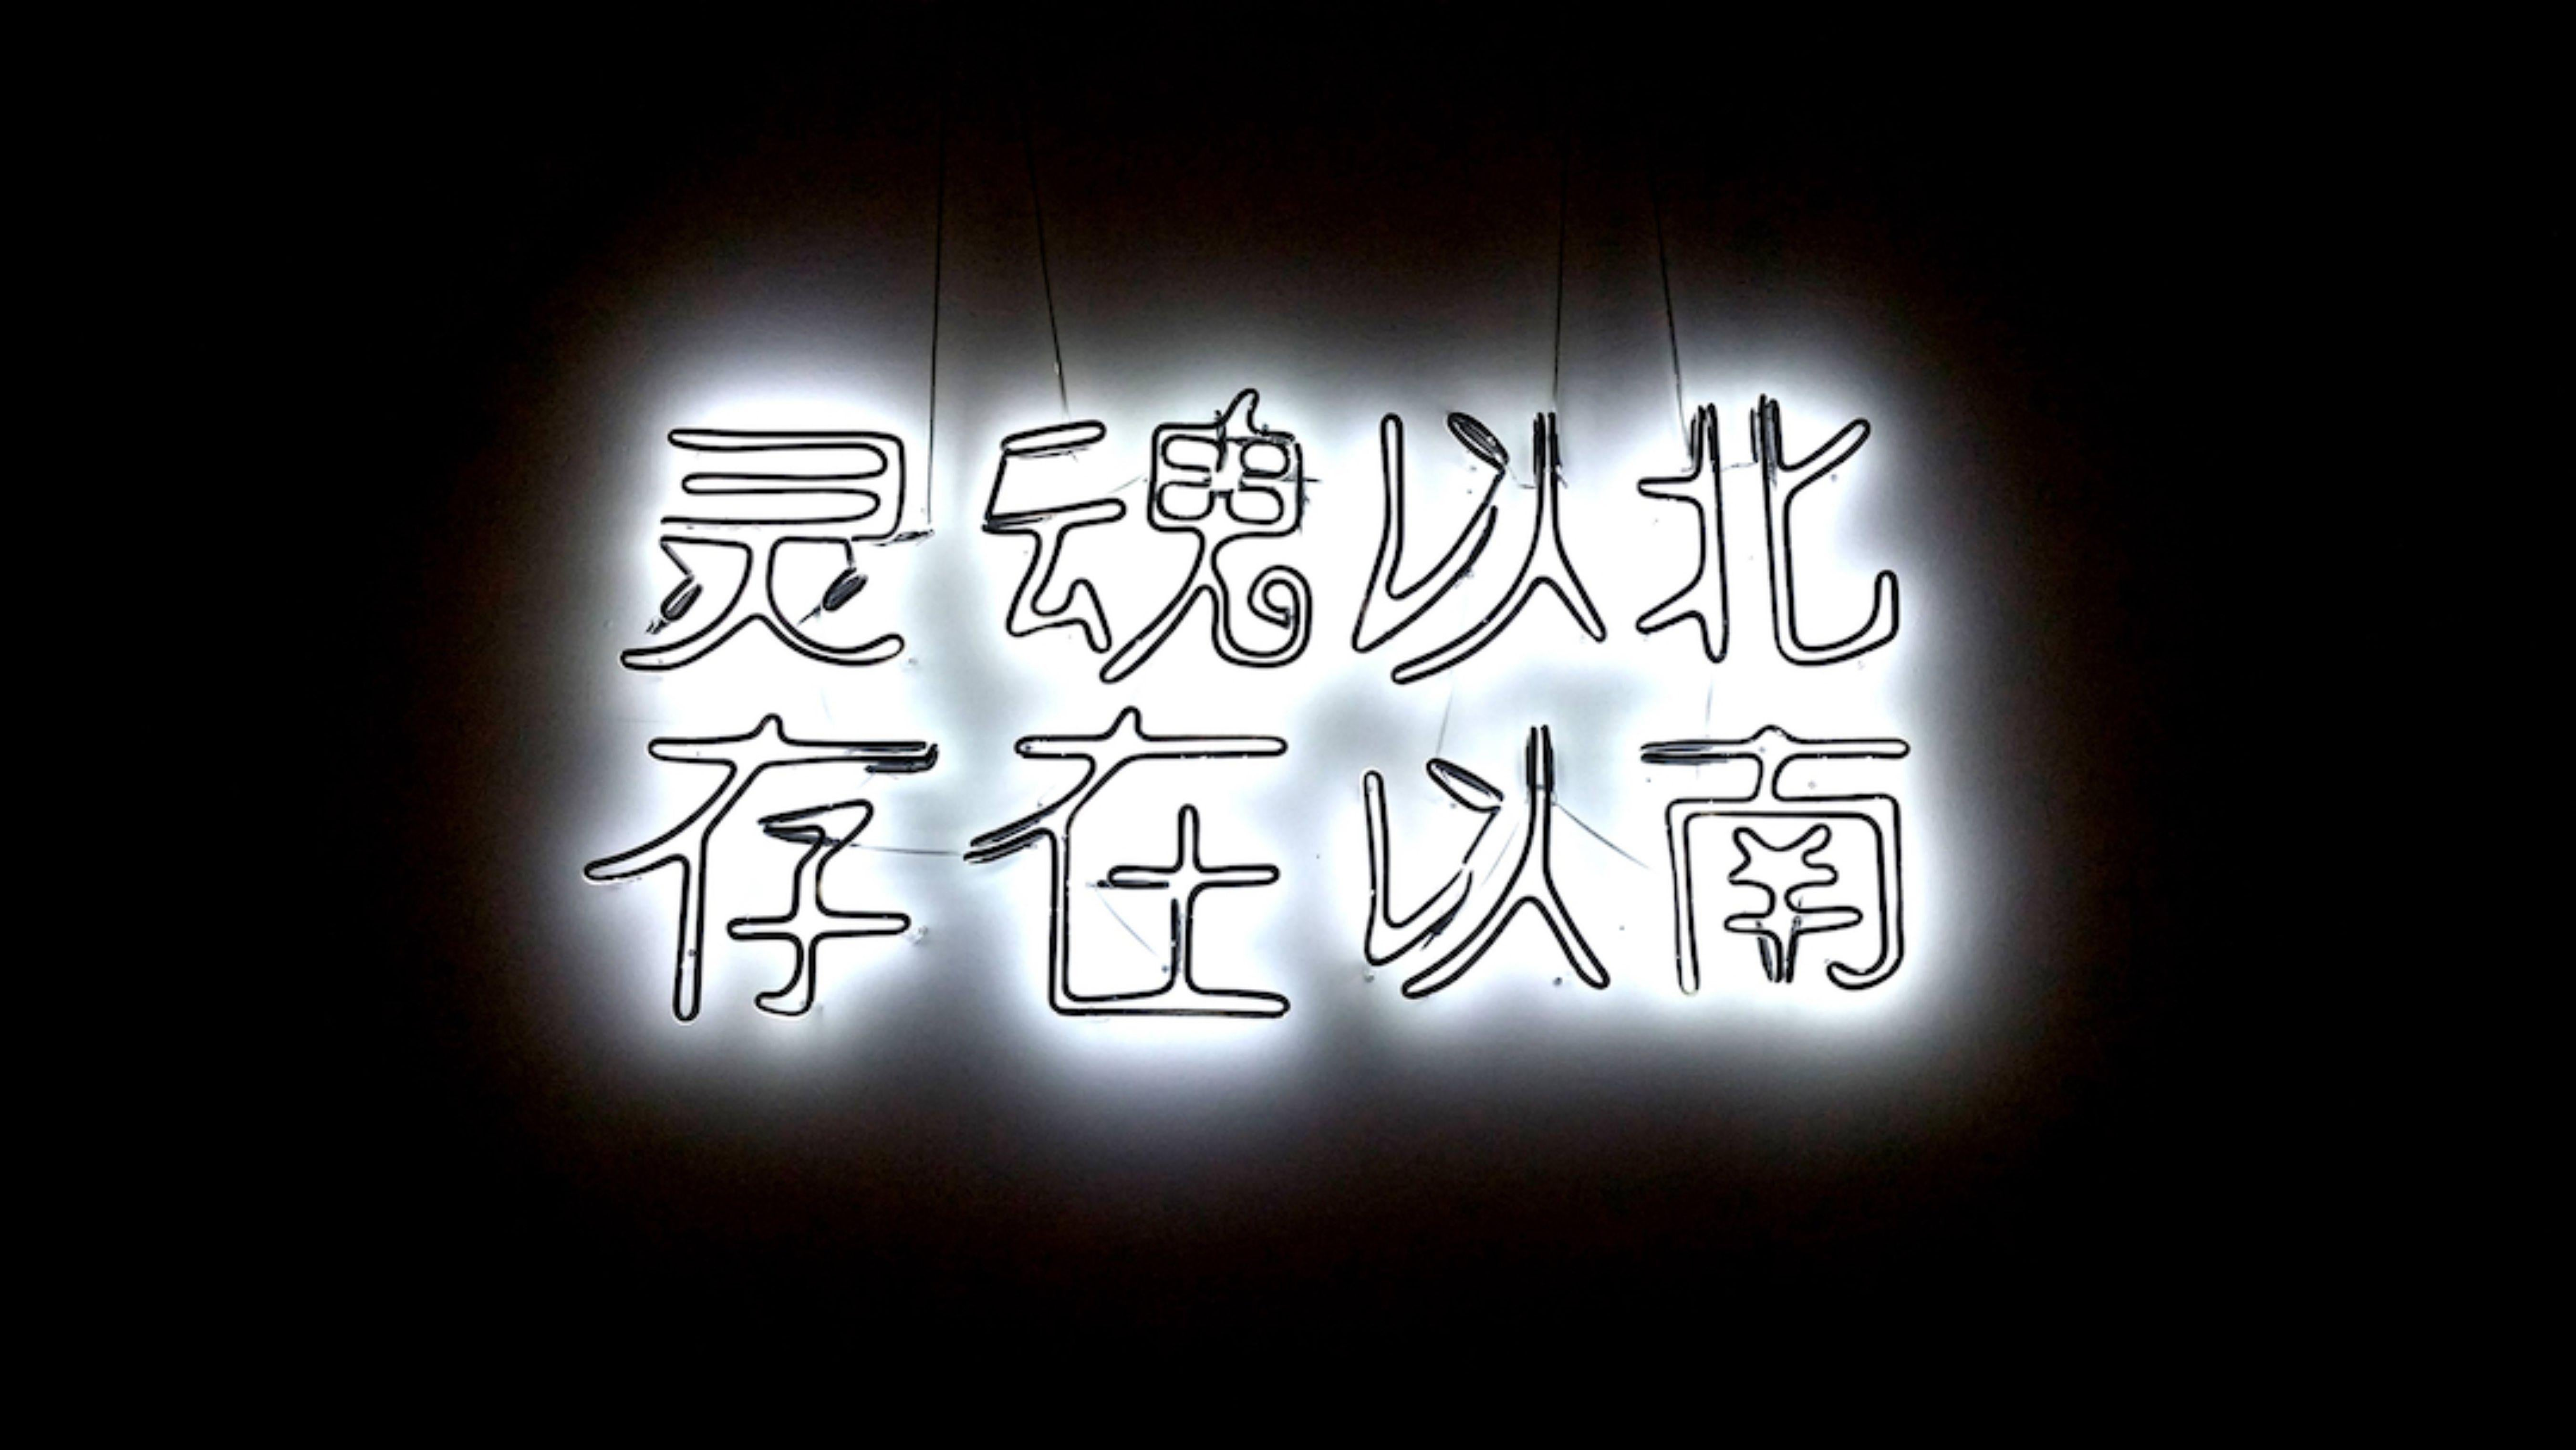 North of My Soul, South of My Existence (White Neon Text Chinese)